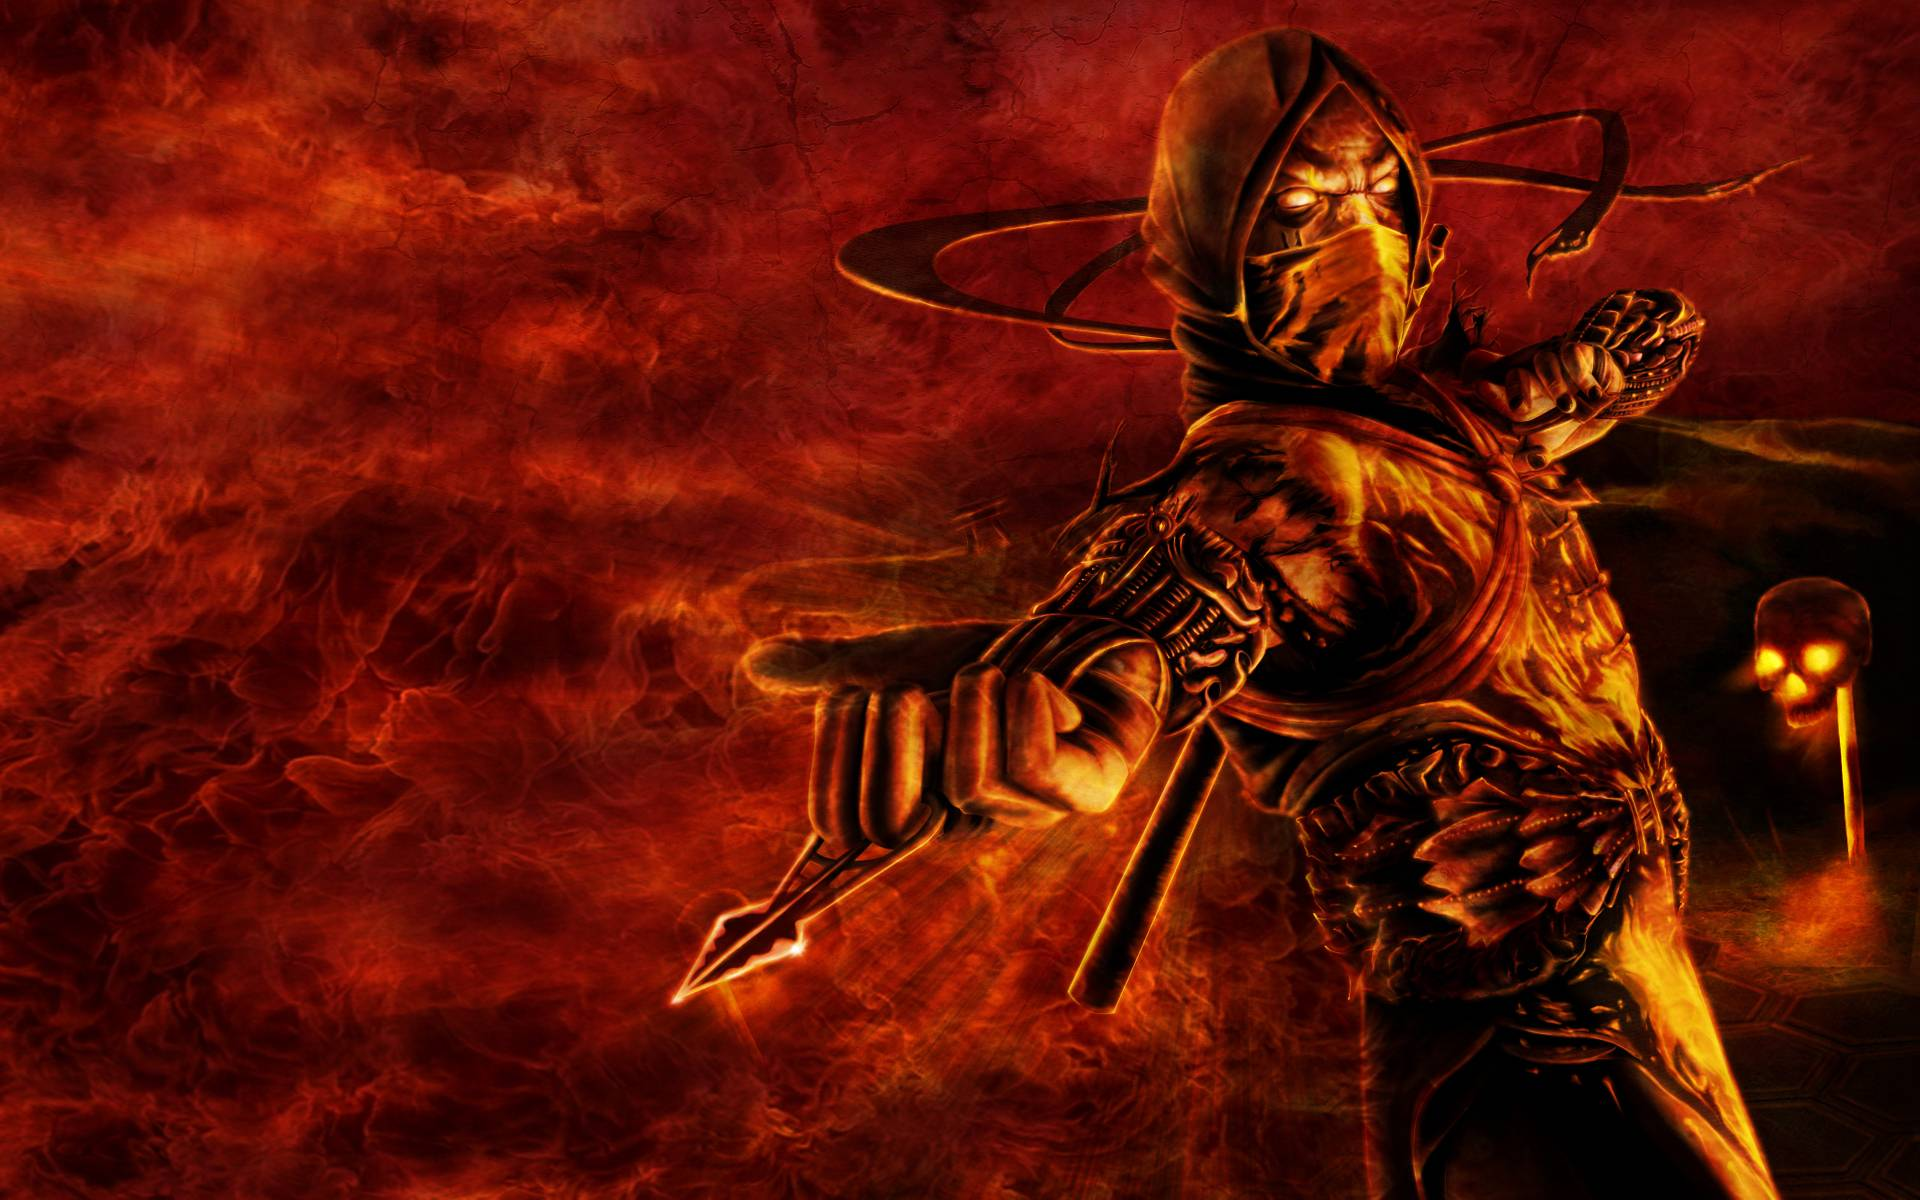 Image For > Scorpion Wallpapers Hd